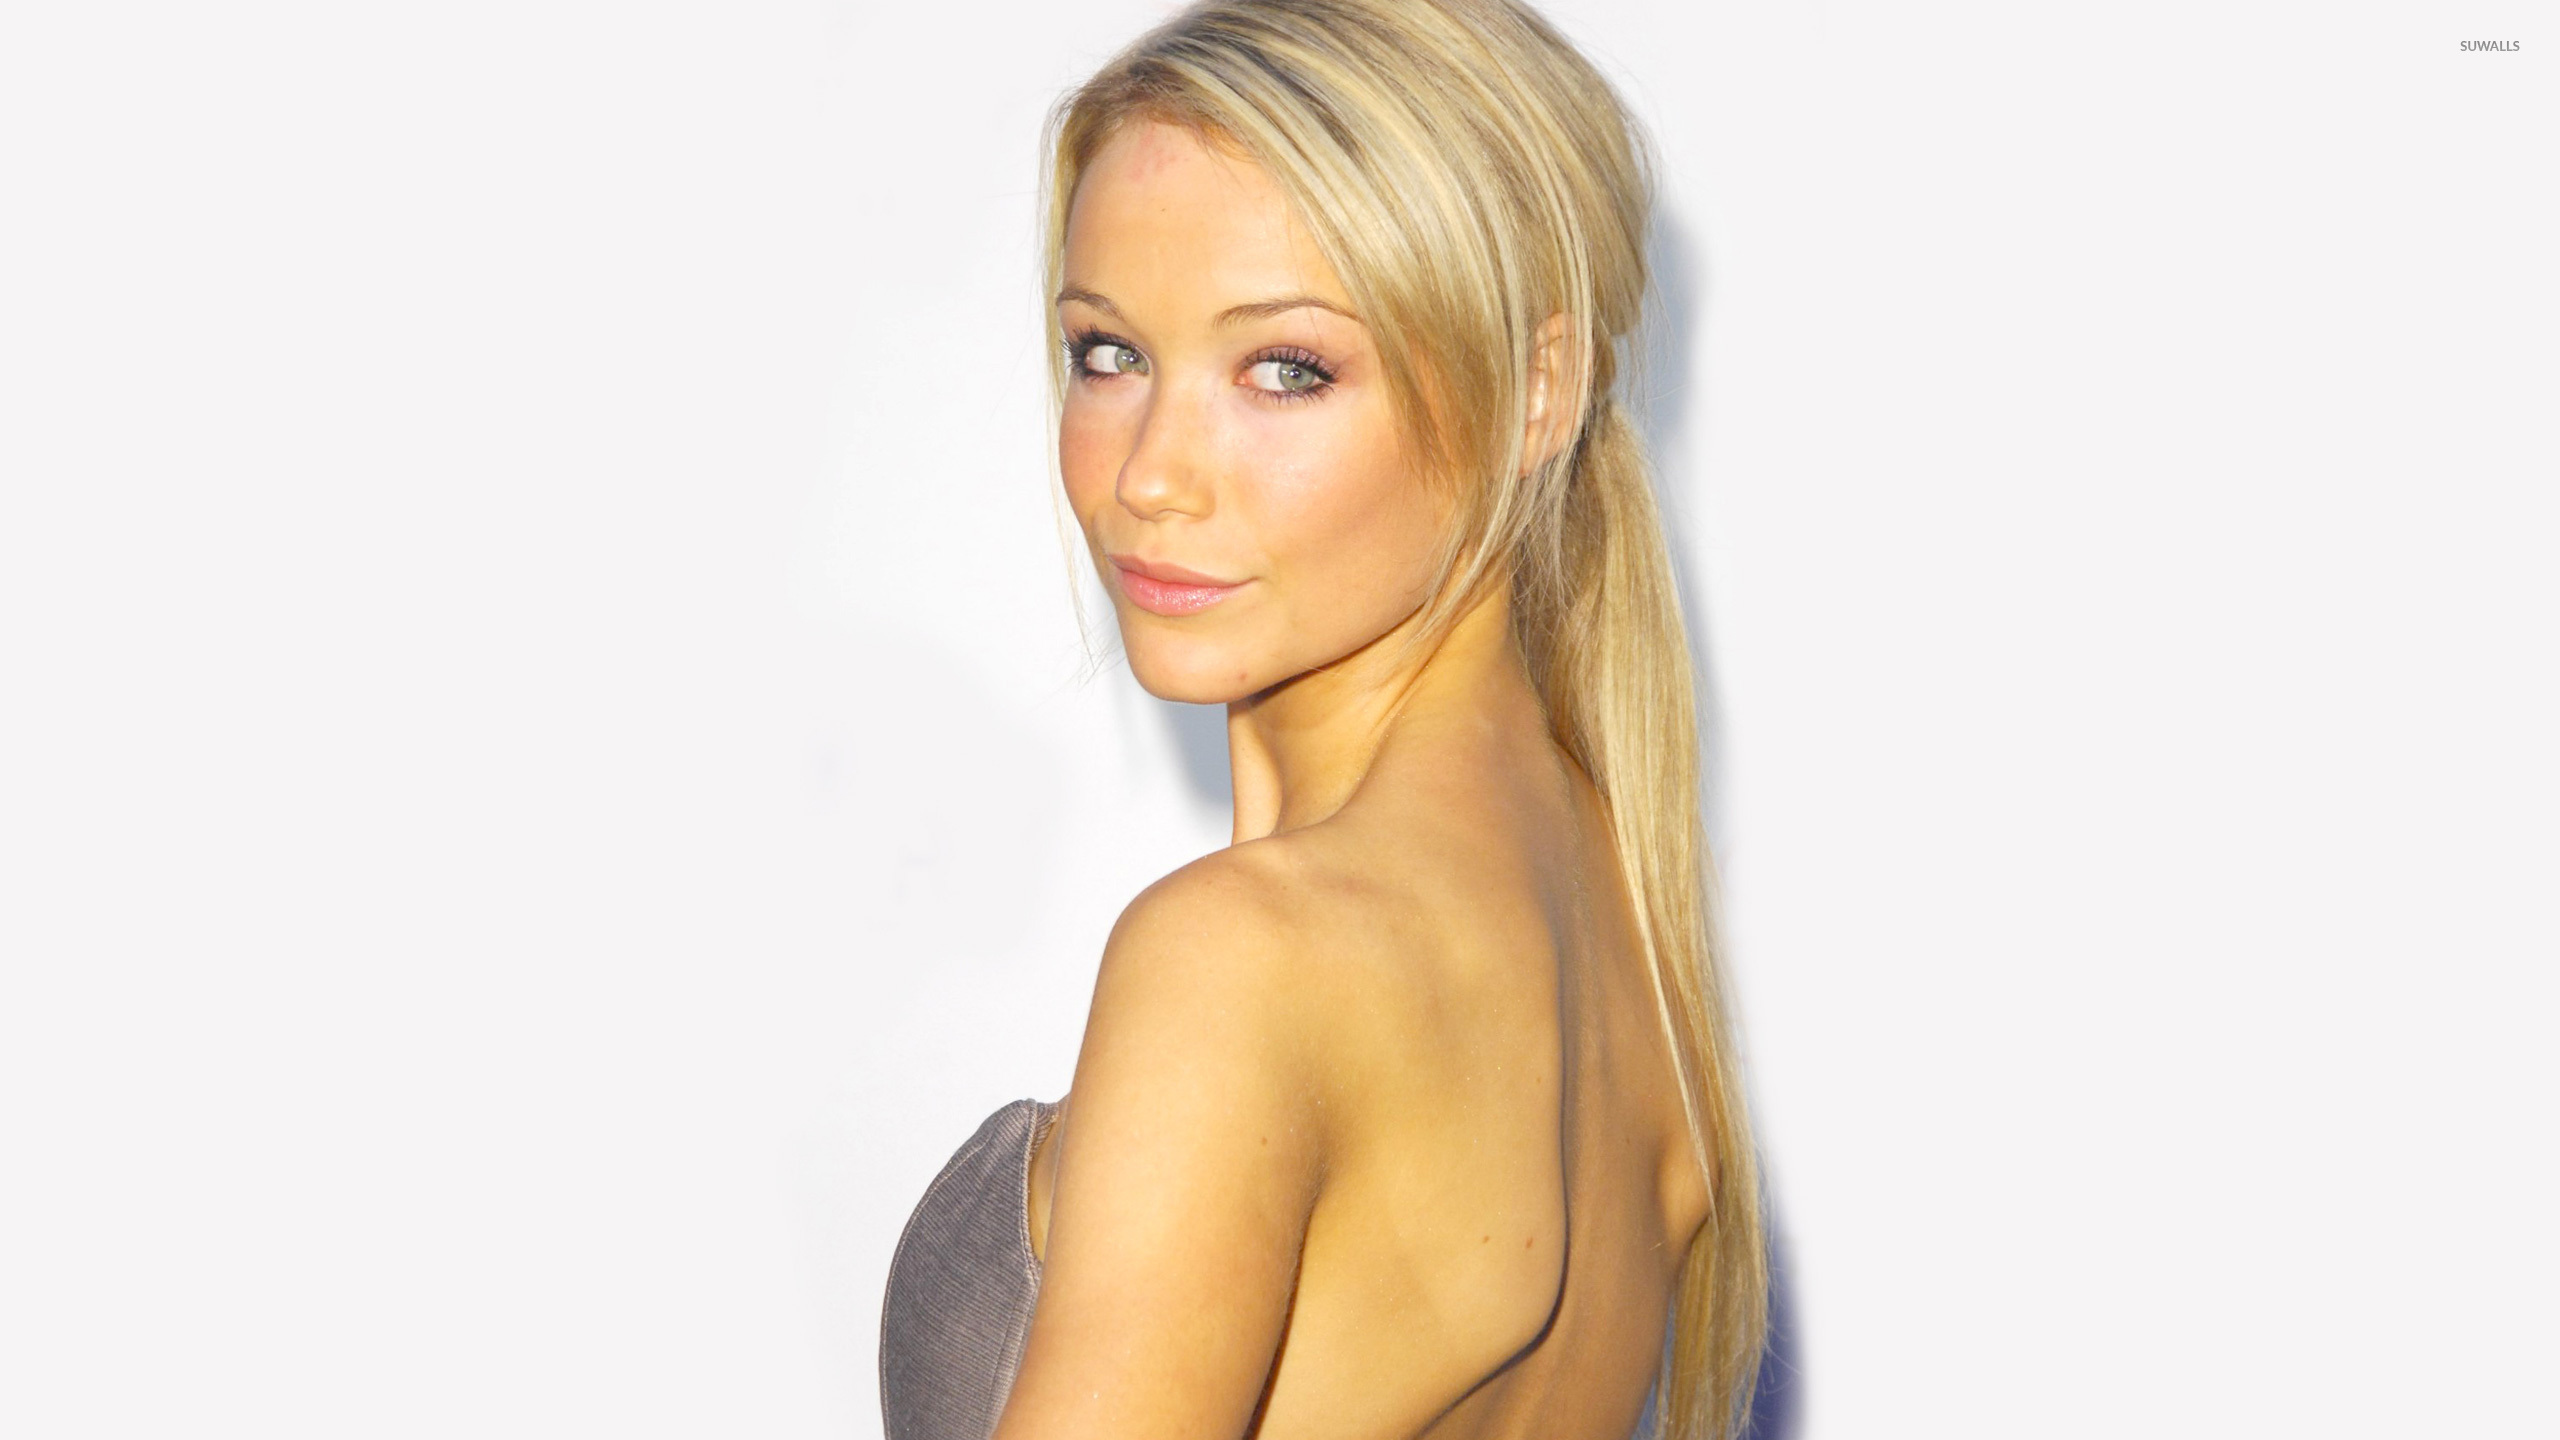 Katrina Bowden wallpaper - Celebrity wallpapers - #7803